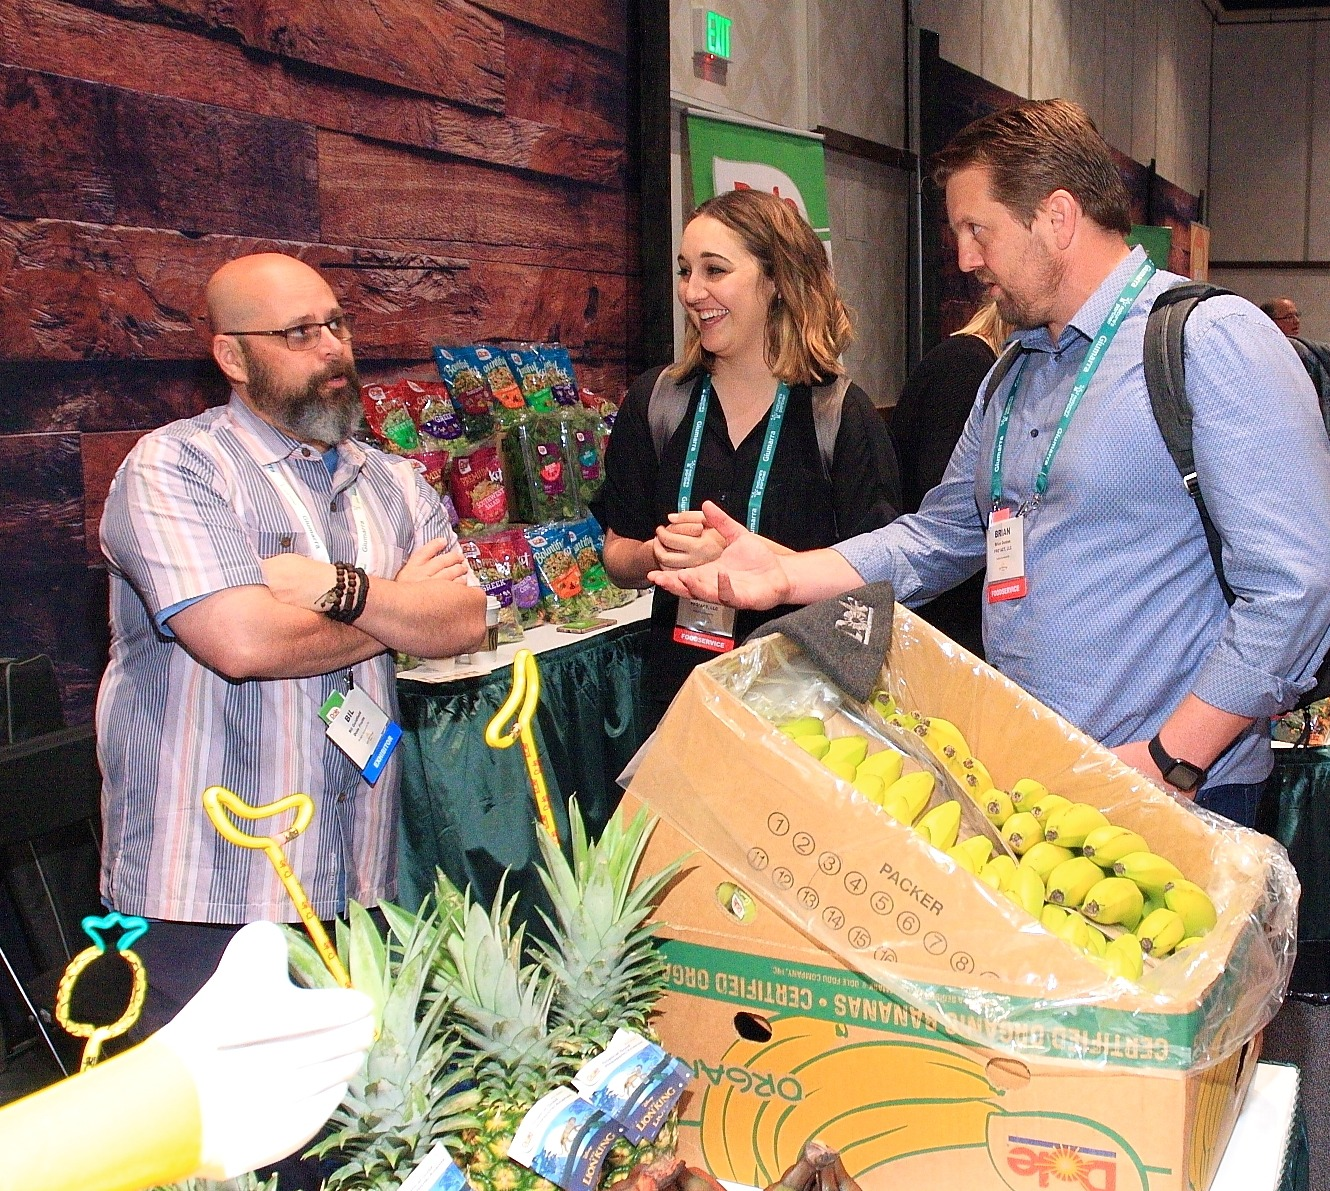 Big Goldfield from Dole Fruits discusses bananas with Mackenzie Lovelace and Brian Denton from PRO*ACT